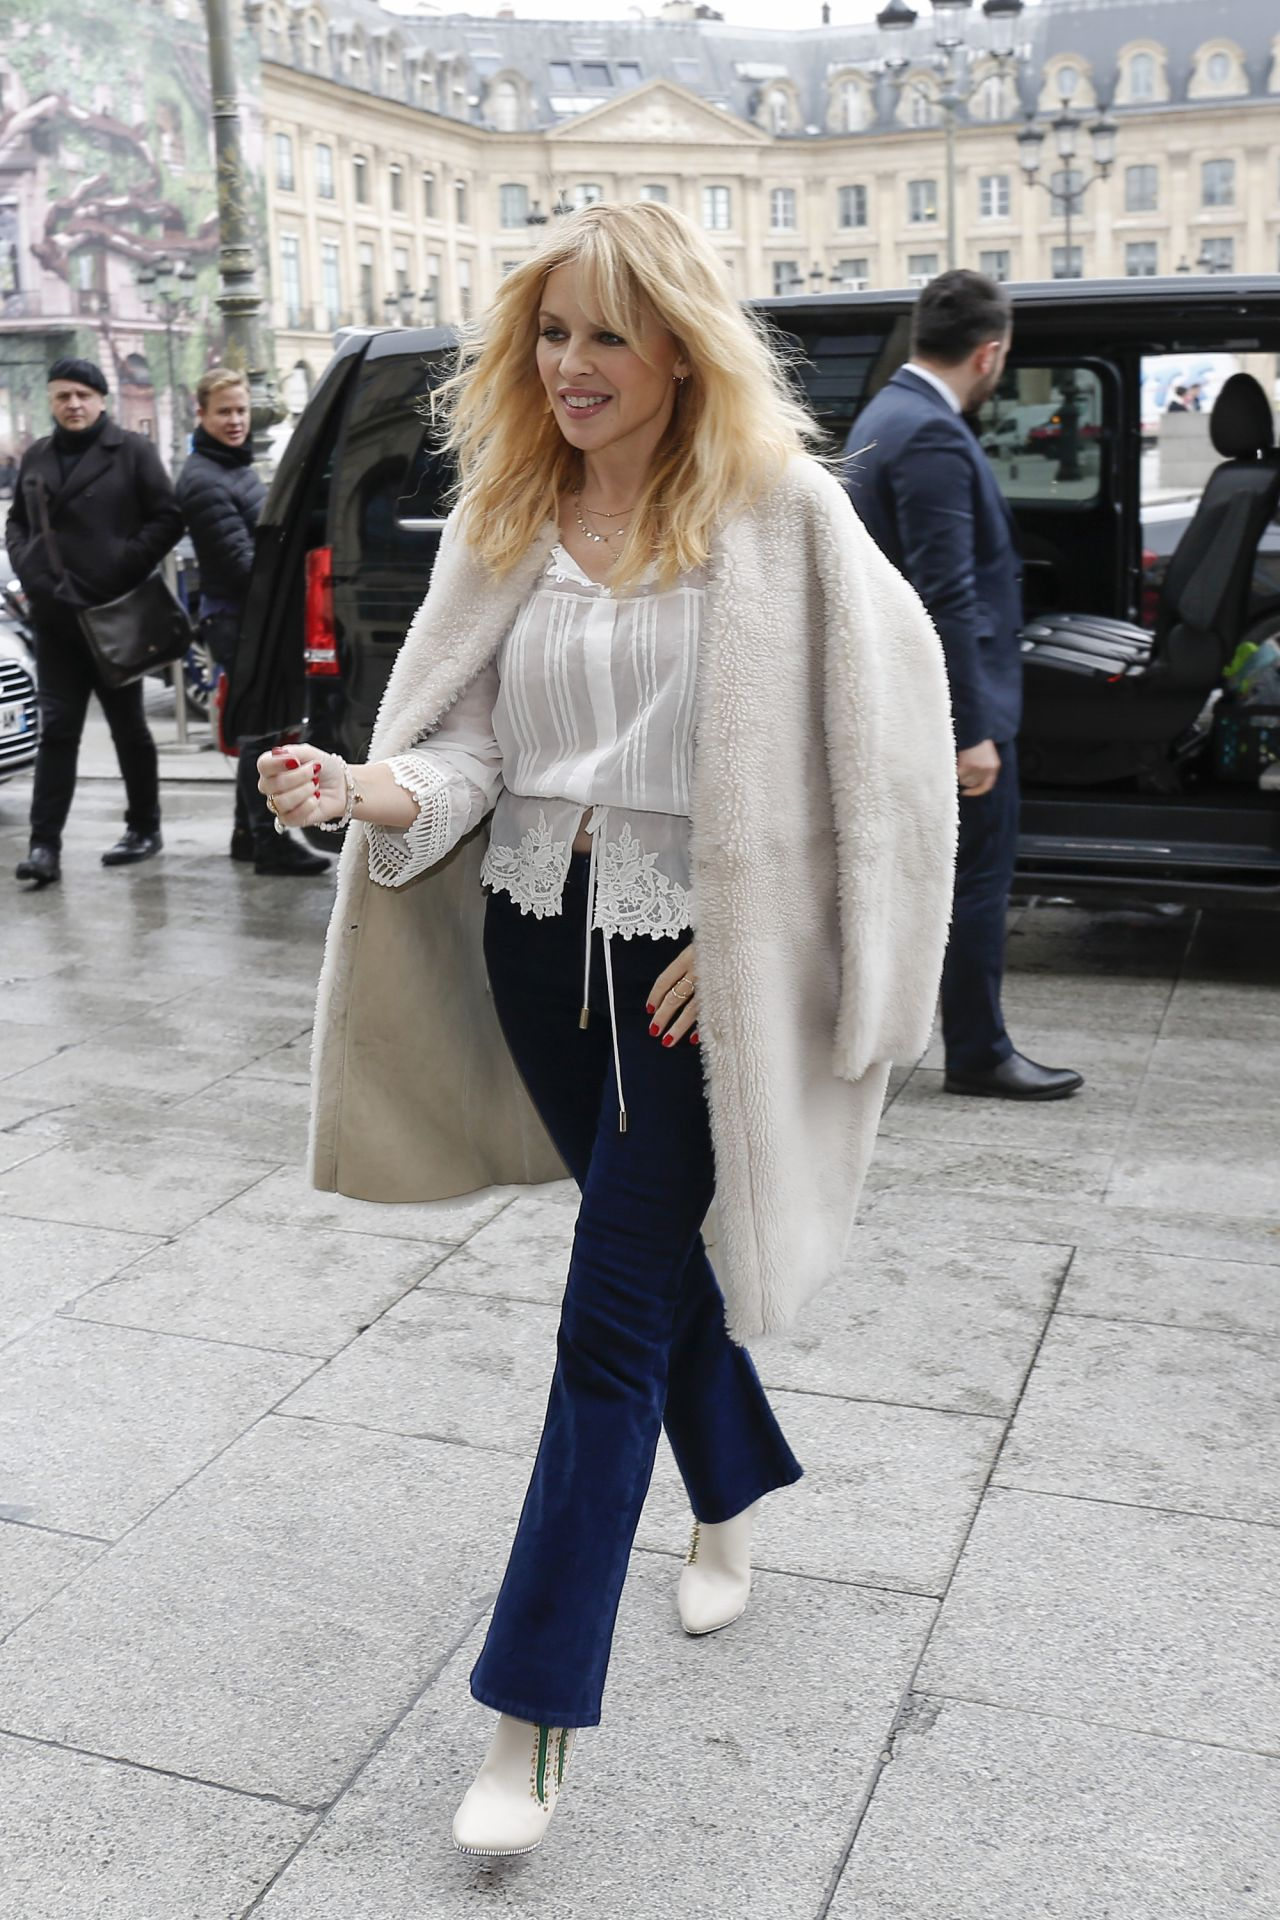 Kylie Minogue Cute Style Arriving At Her Hotel In Paris